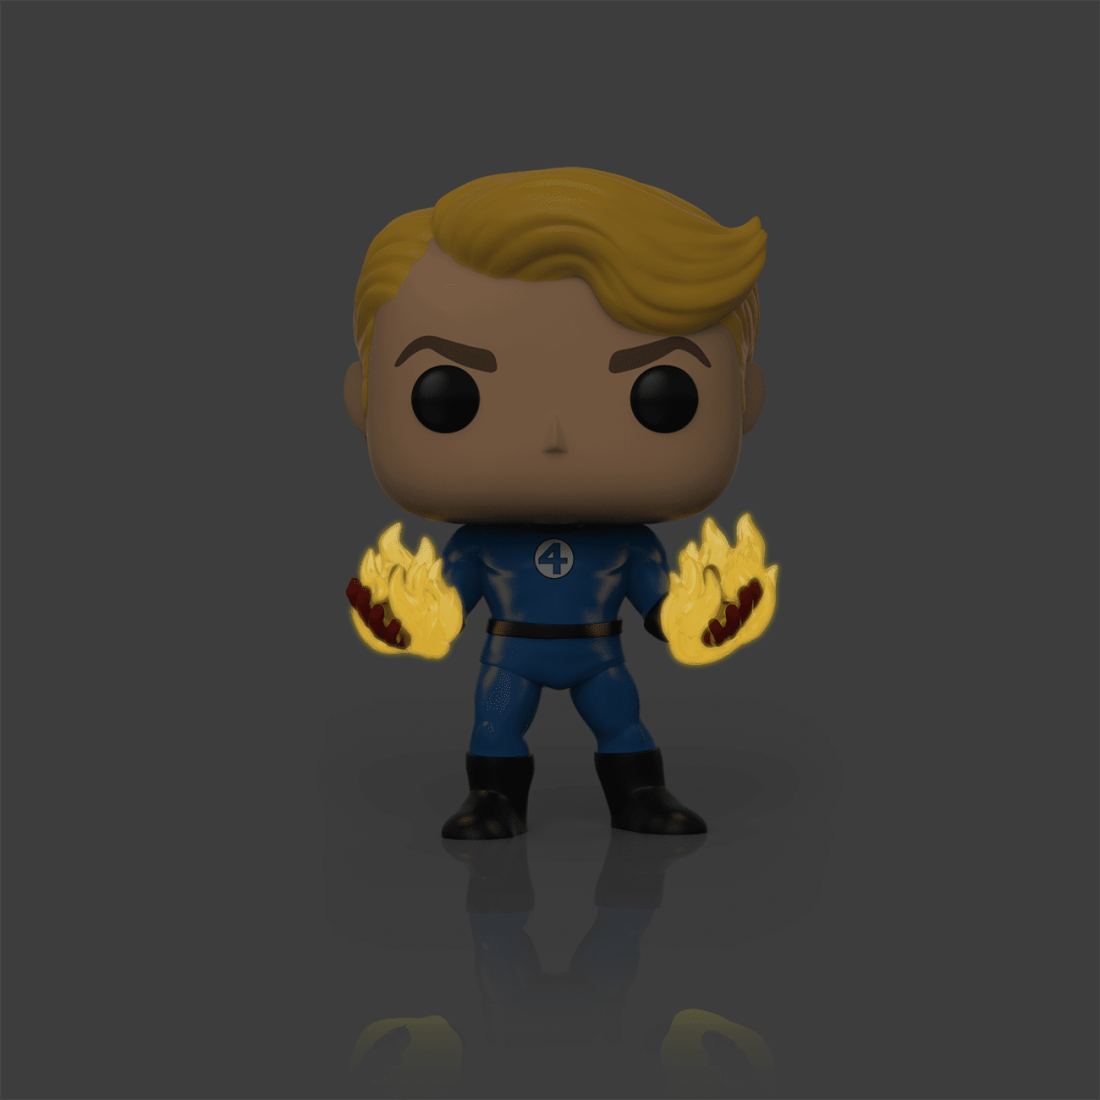 45006_Marvel_FantasticFour_HumanTorch_Suited_POP_GLOW_WEB-3e584bde60f1e840bfcee32f0371f431.png